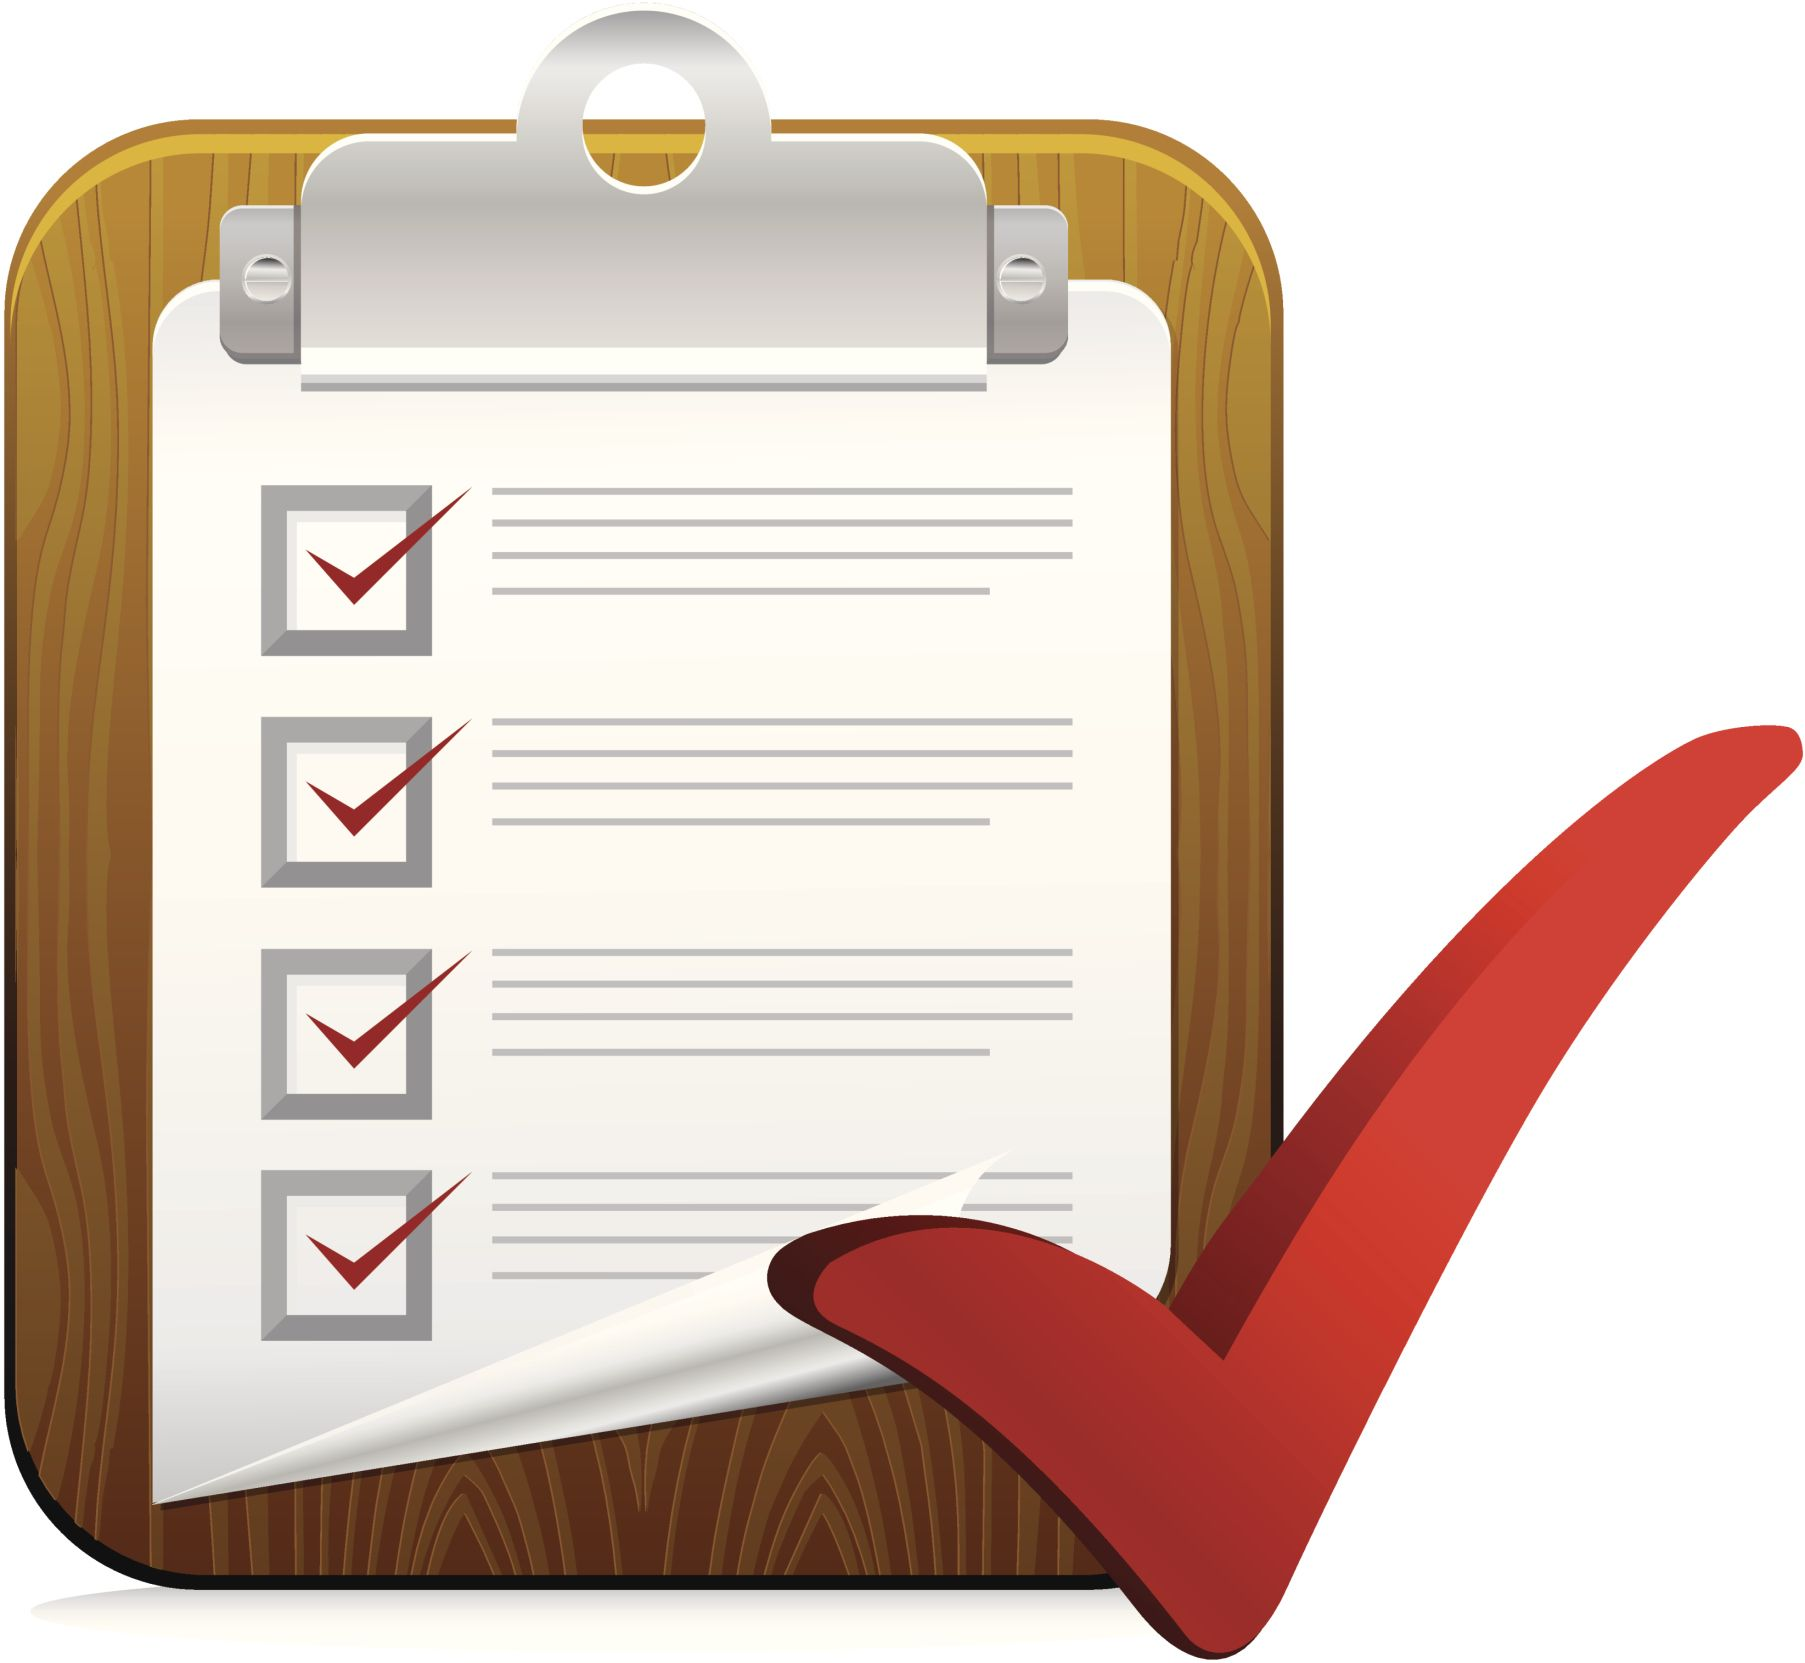 Preparing for Surgery: Medication Safety Checklist